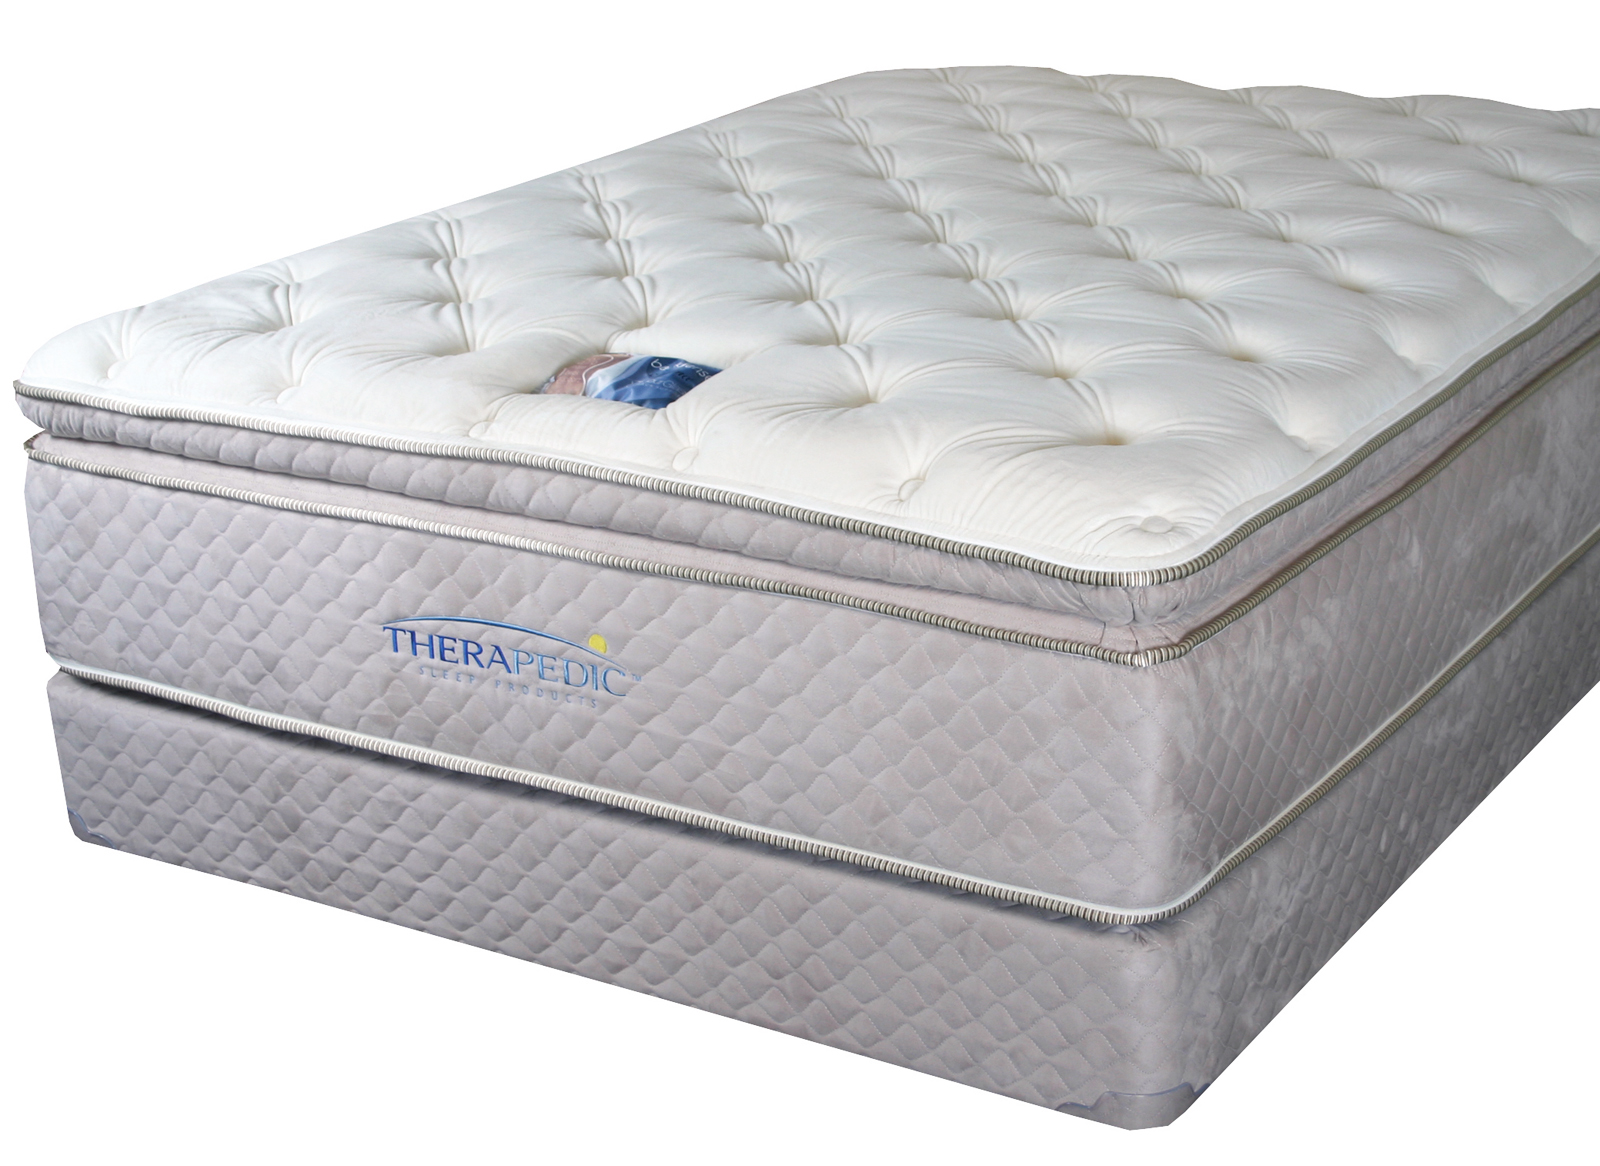 x - Therapedic BackSense Elite - Plush Pillow Top